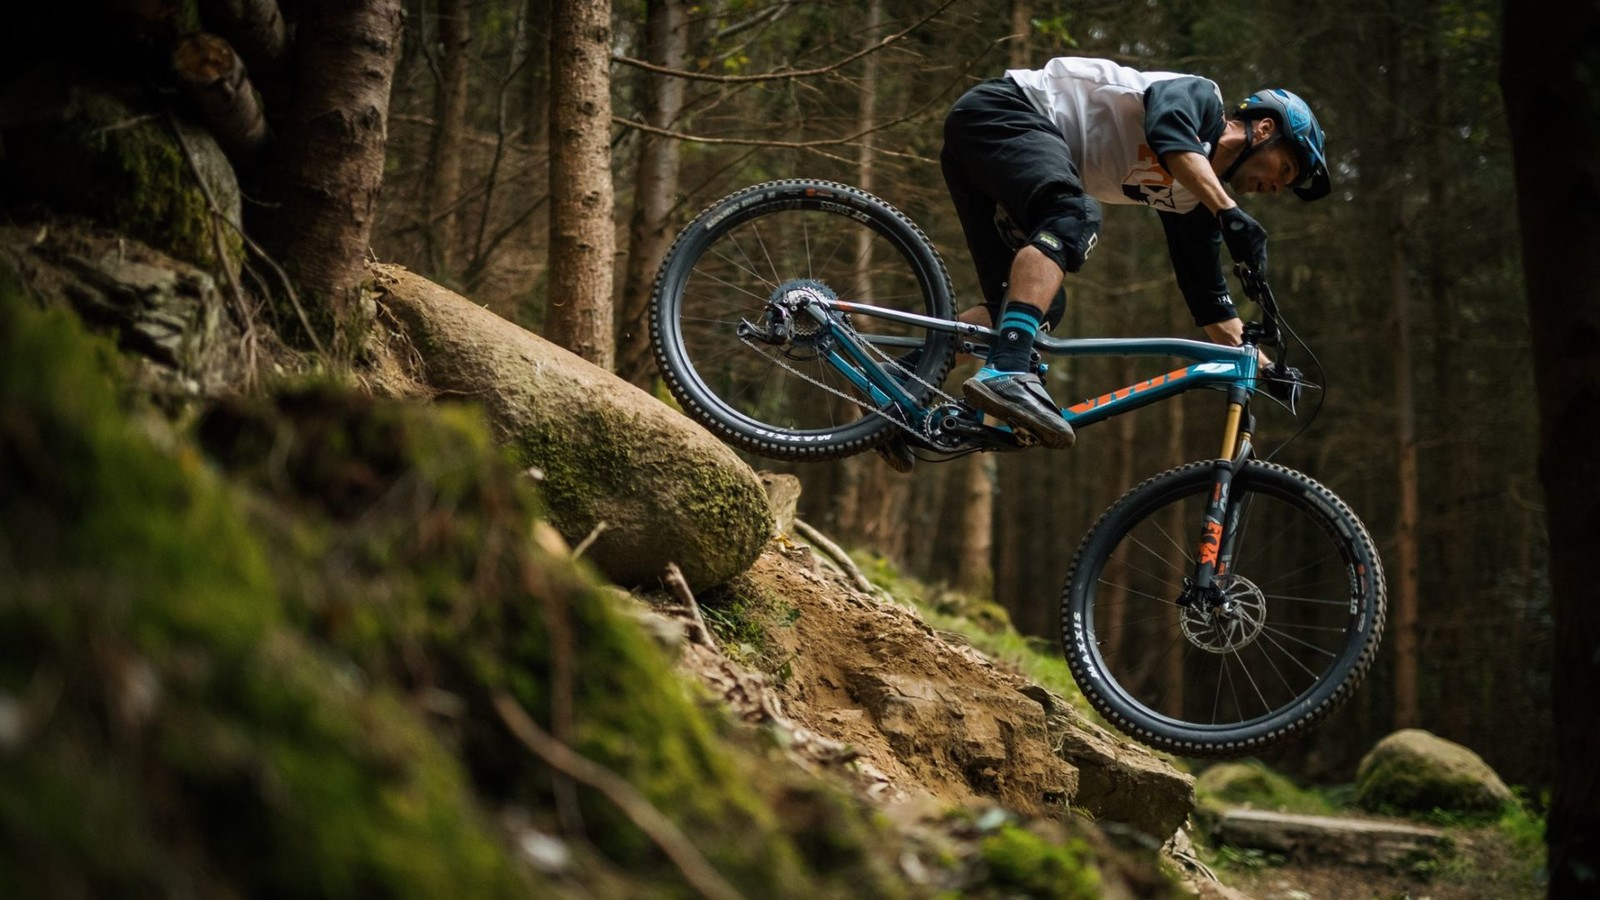 d48bf74d87e Vitus Launches 2019 Mountain Bike Range - Mountain Bikes Press ...